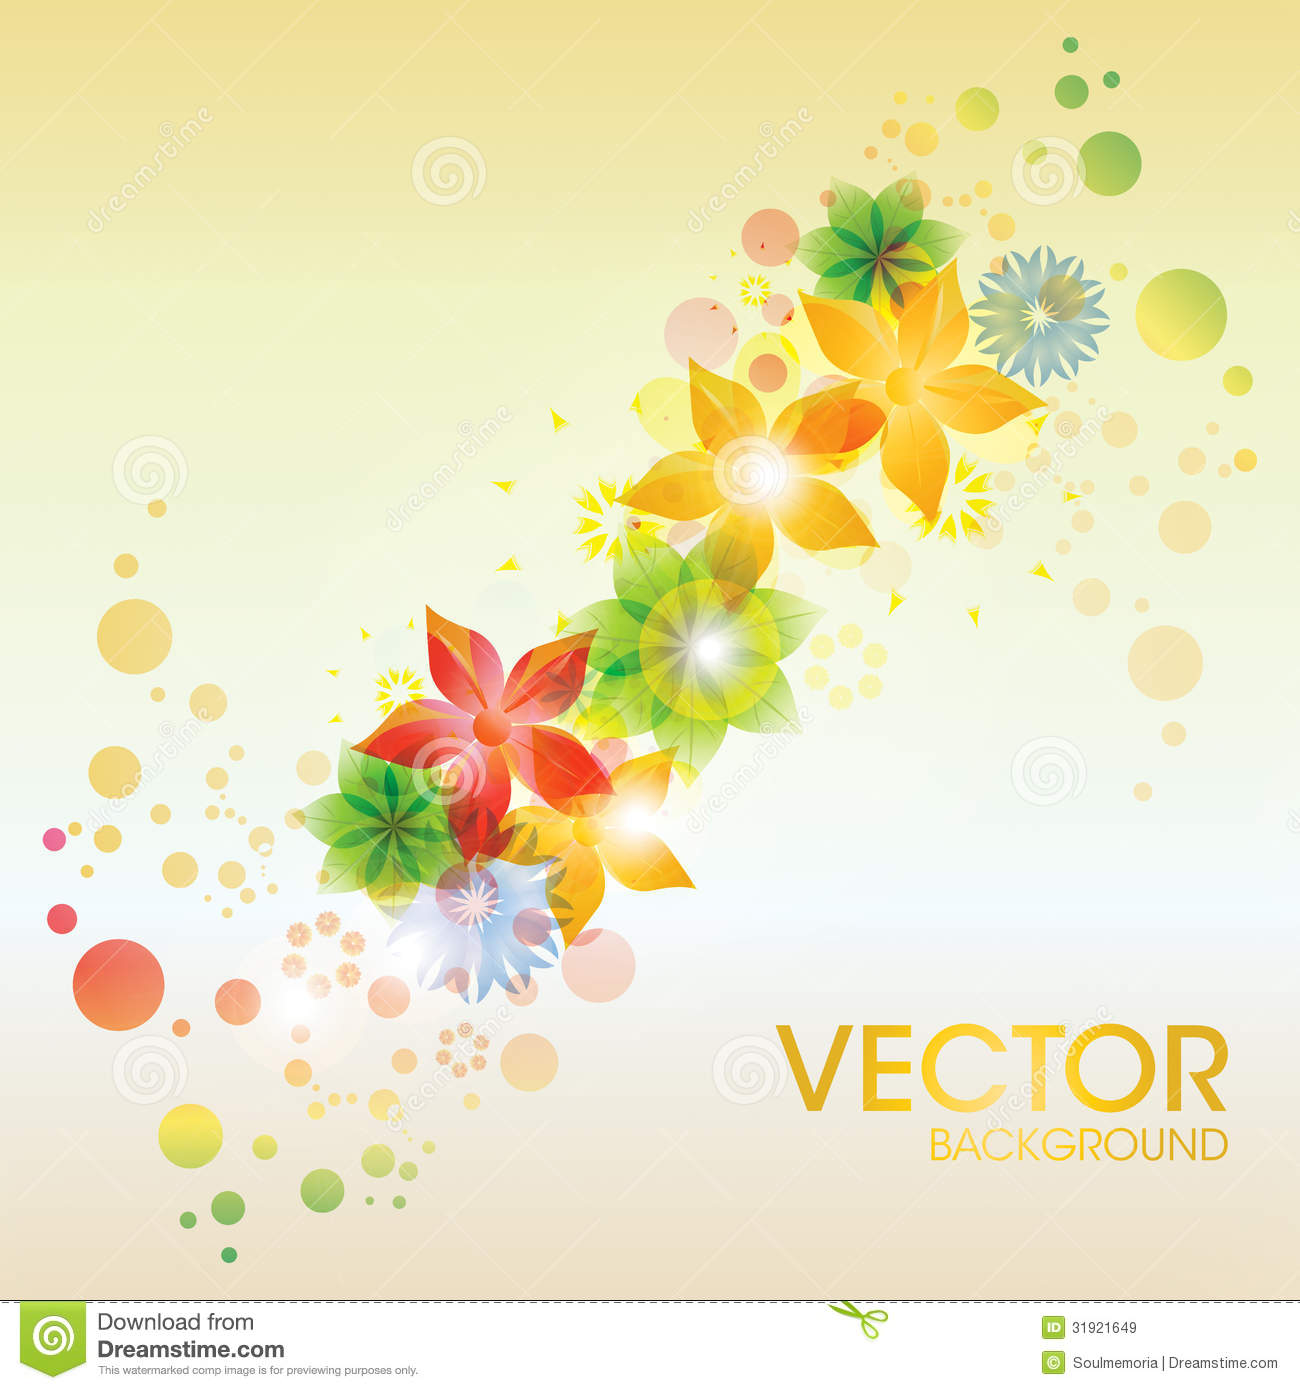 Colorful abstract design background vector art free vector - Royalty Free Stock Photo Download Colorful Abstract Flower Vector Background